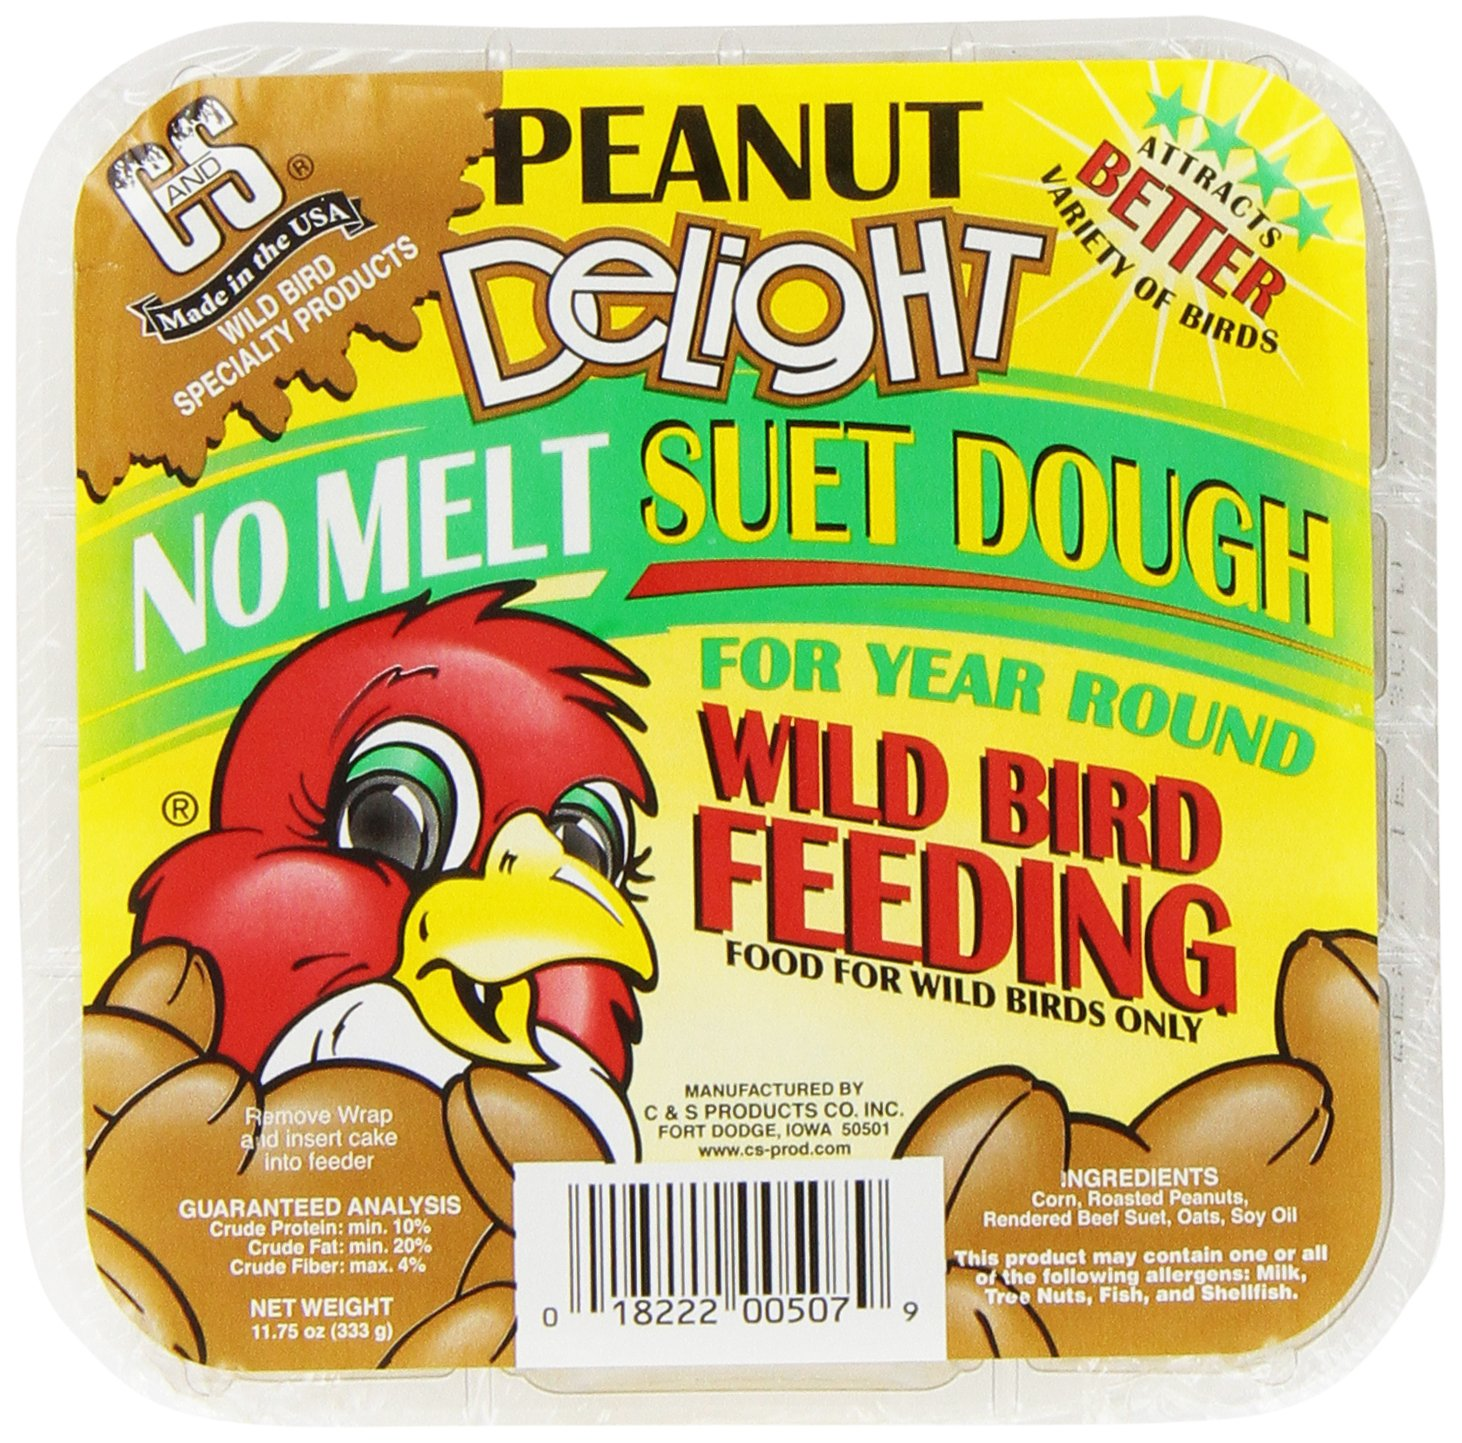 C & S Products Peanut Delight, Pack Of 12 (11.75 Oz Each) by C & S Products